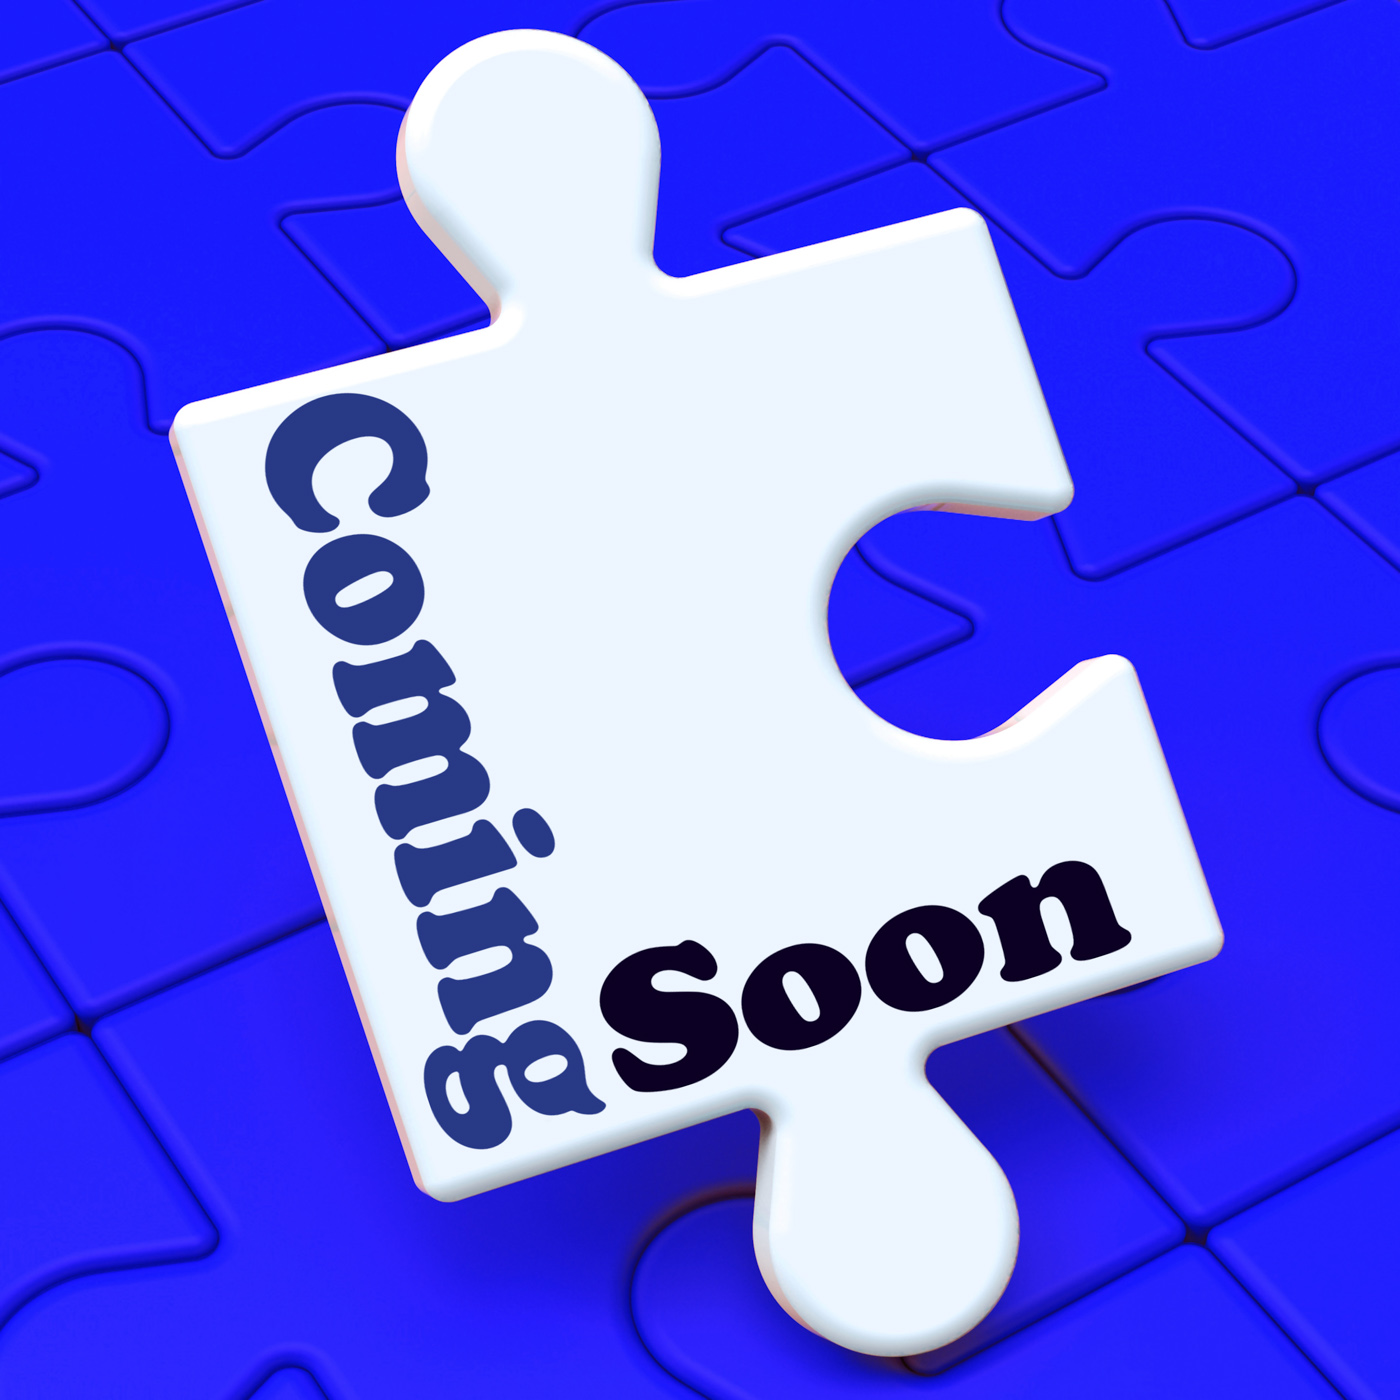 Coming soon puzzle shows new arrival or promotion product photo